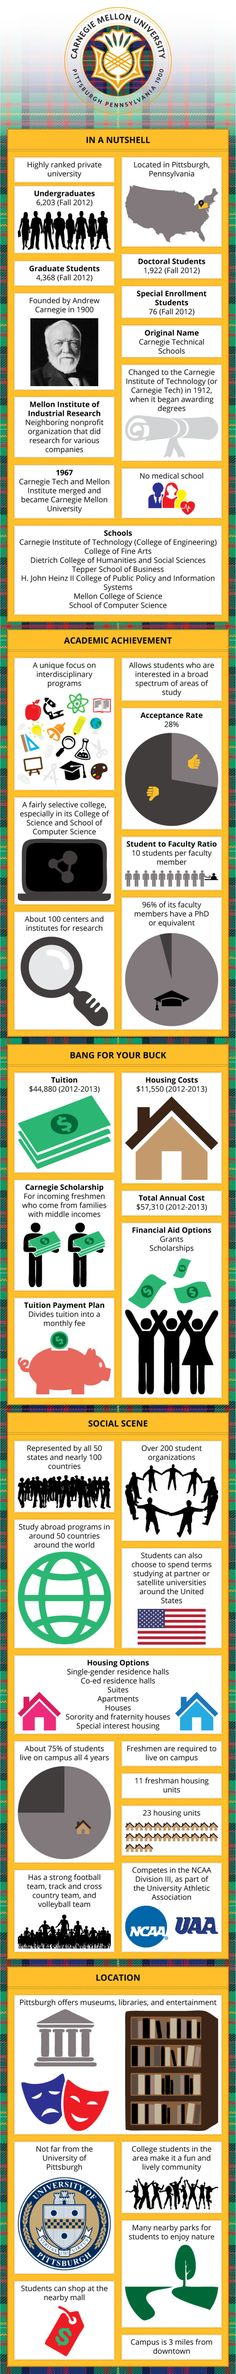 Carnegie Mellon University CMU Infographic